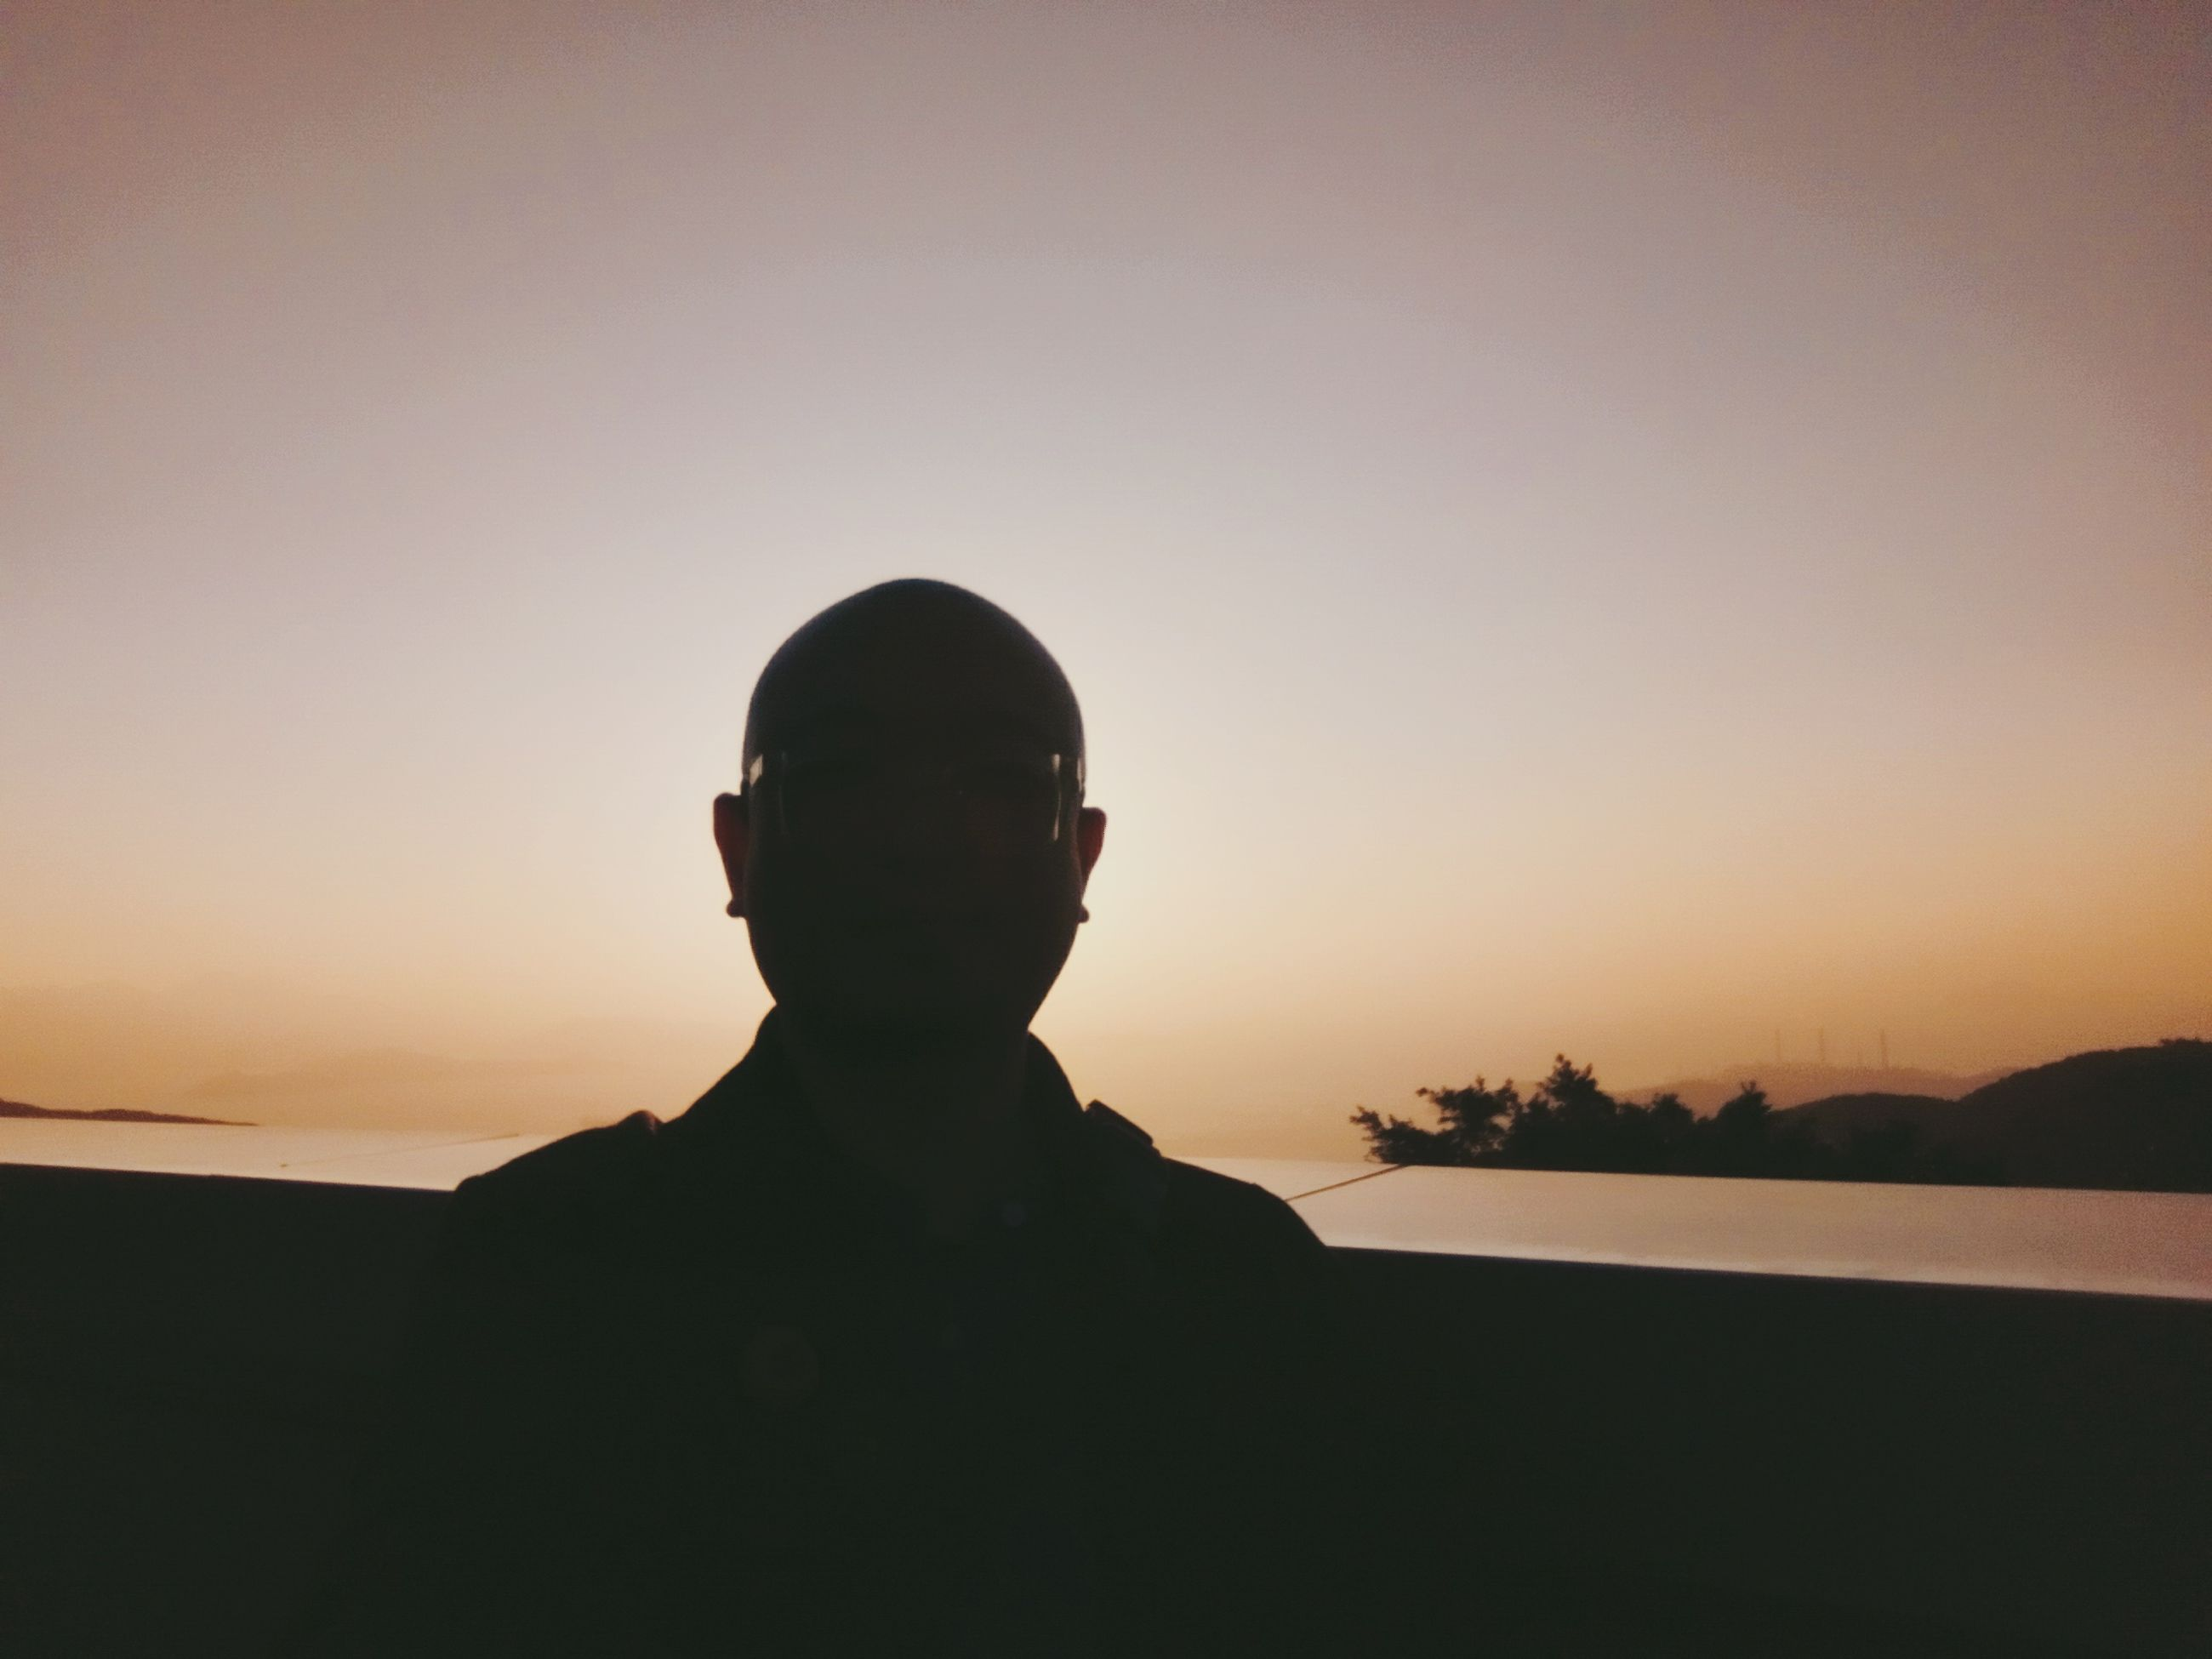 sunset, silhouette, sky, one person, nature, sun, beauty in nature, scenics, outdoors, clear sky, childhood, real people, people